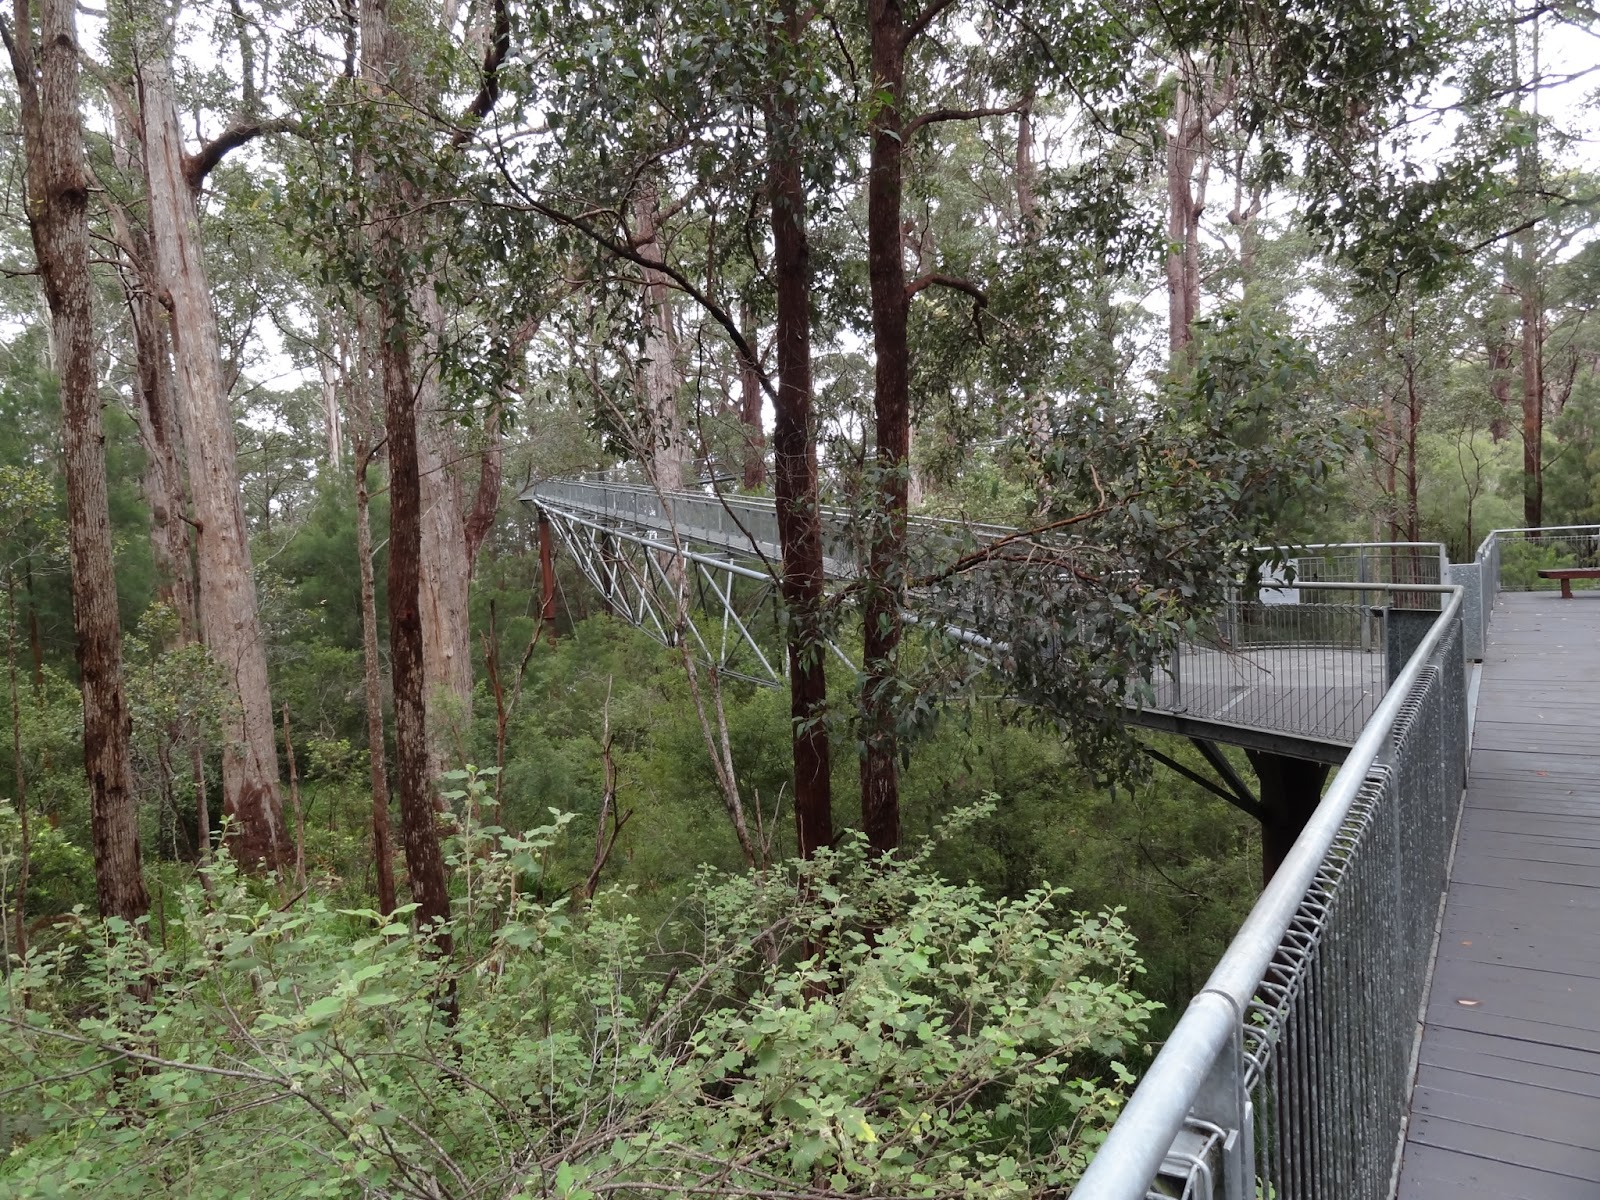 Tree top walk @ Valley of the Giants. The platform was 40m above the ground